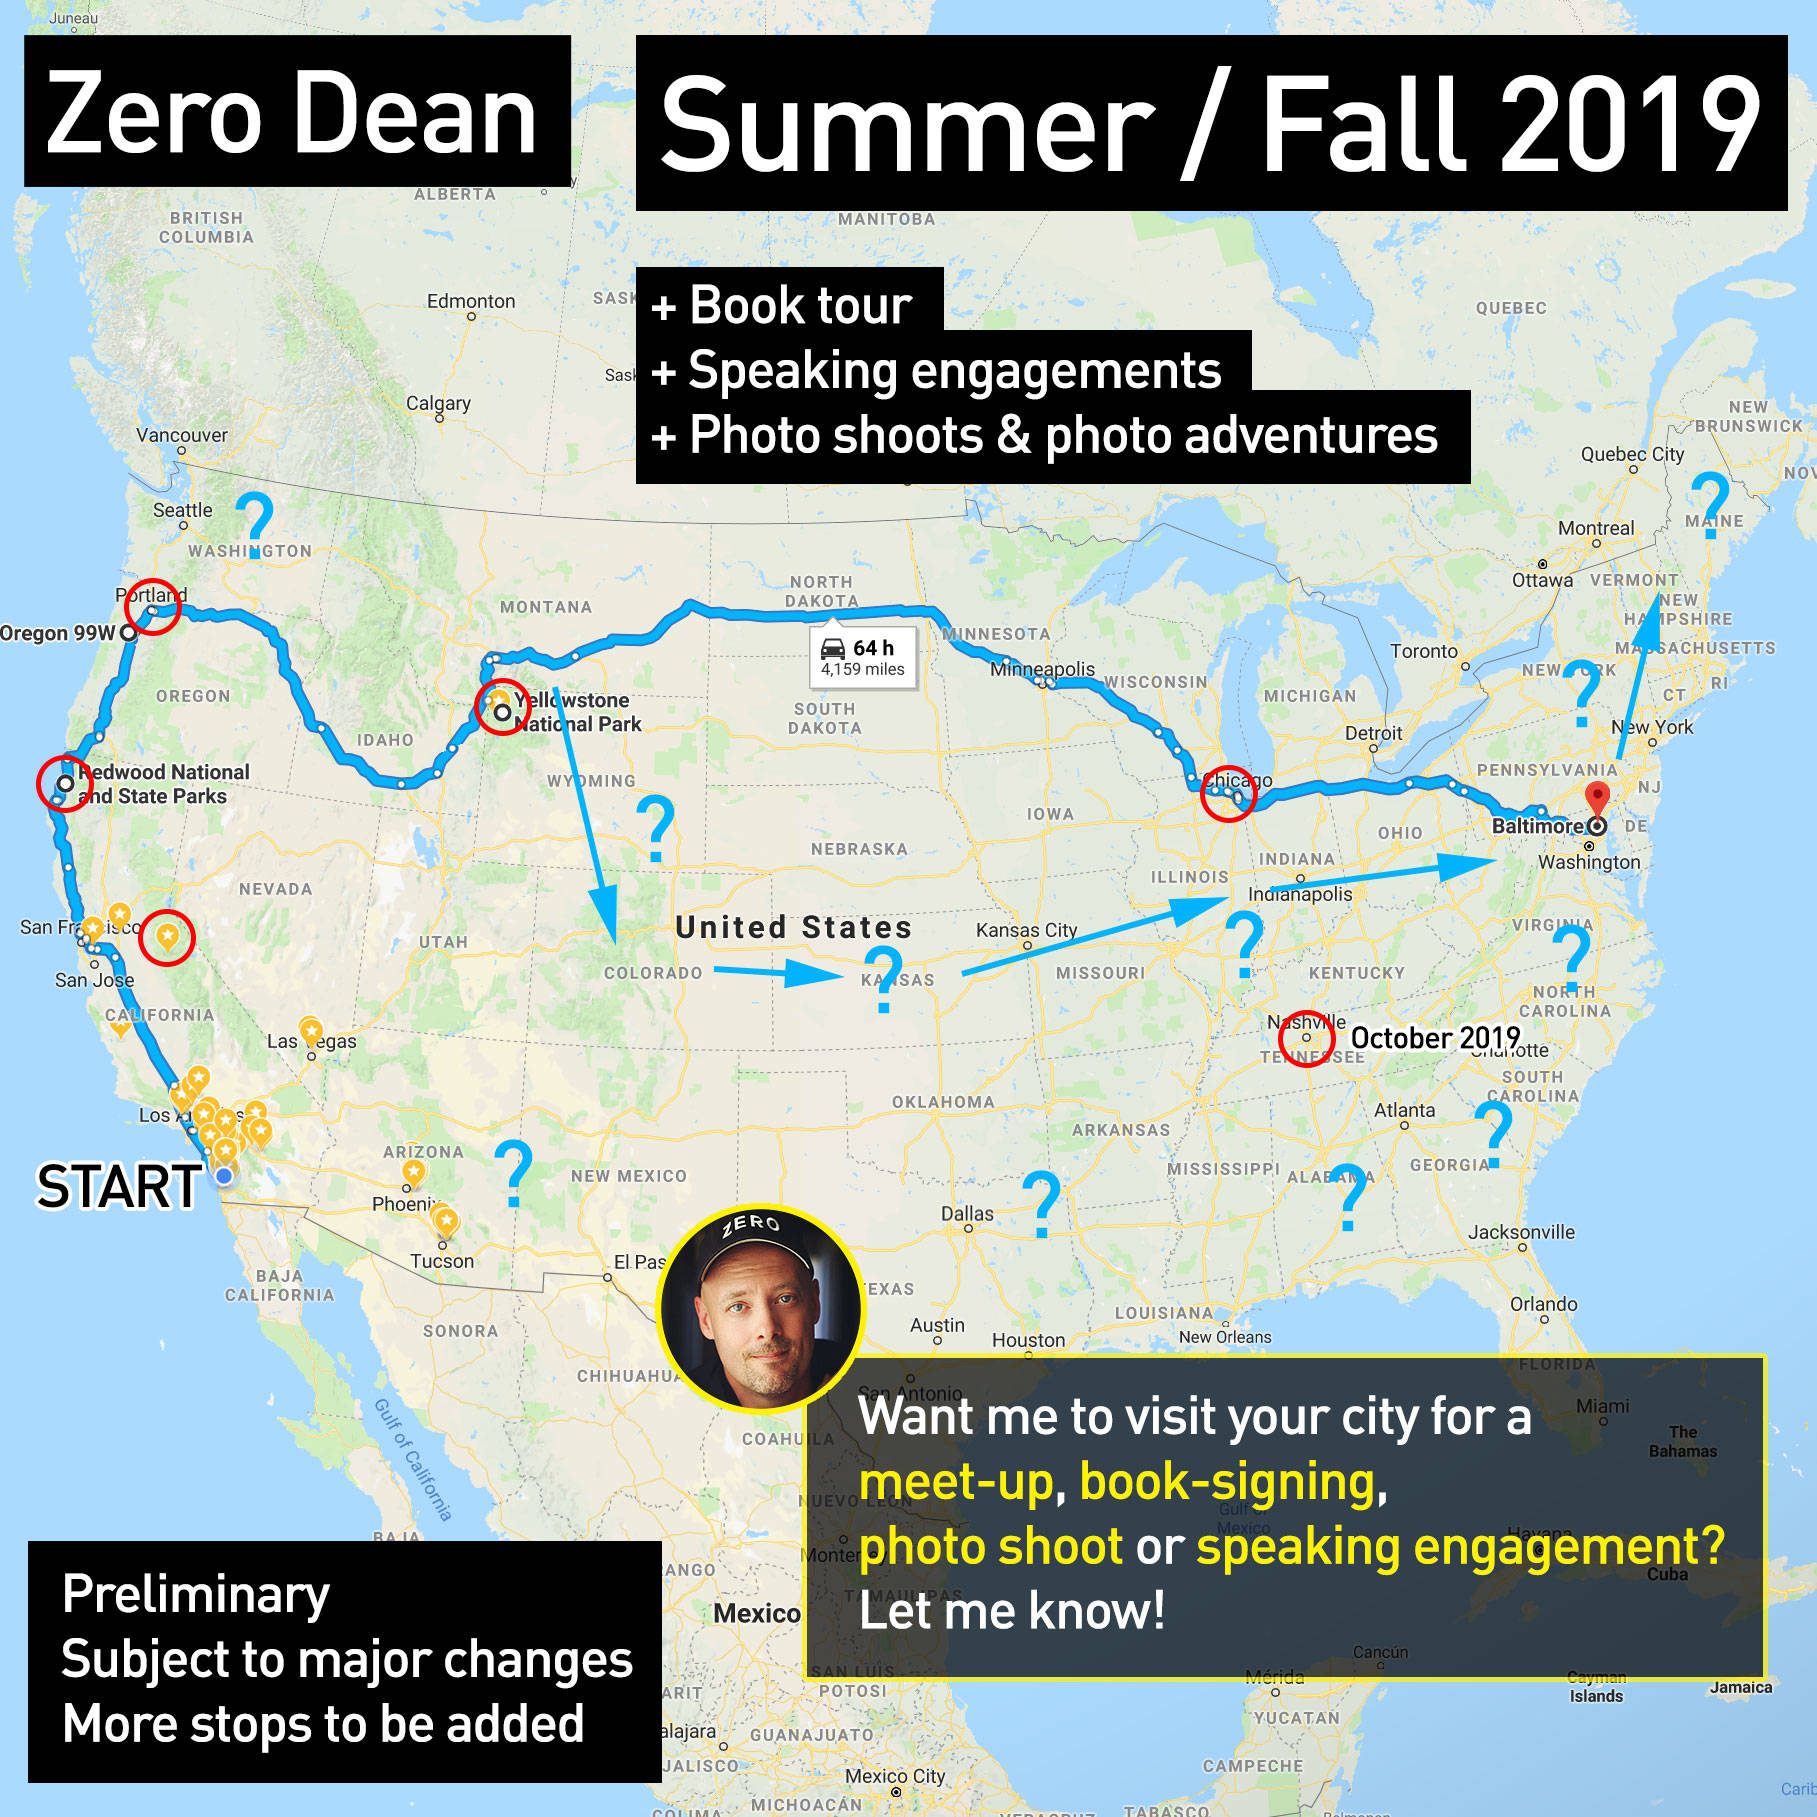 Summer & Fall travel plans